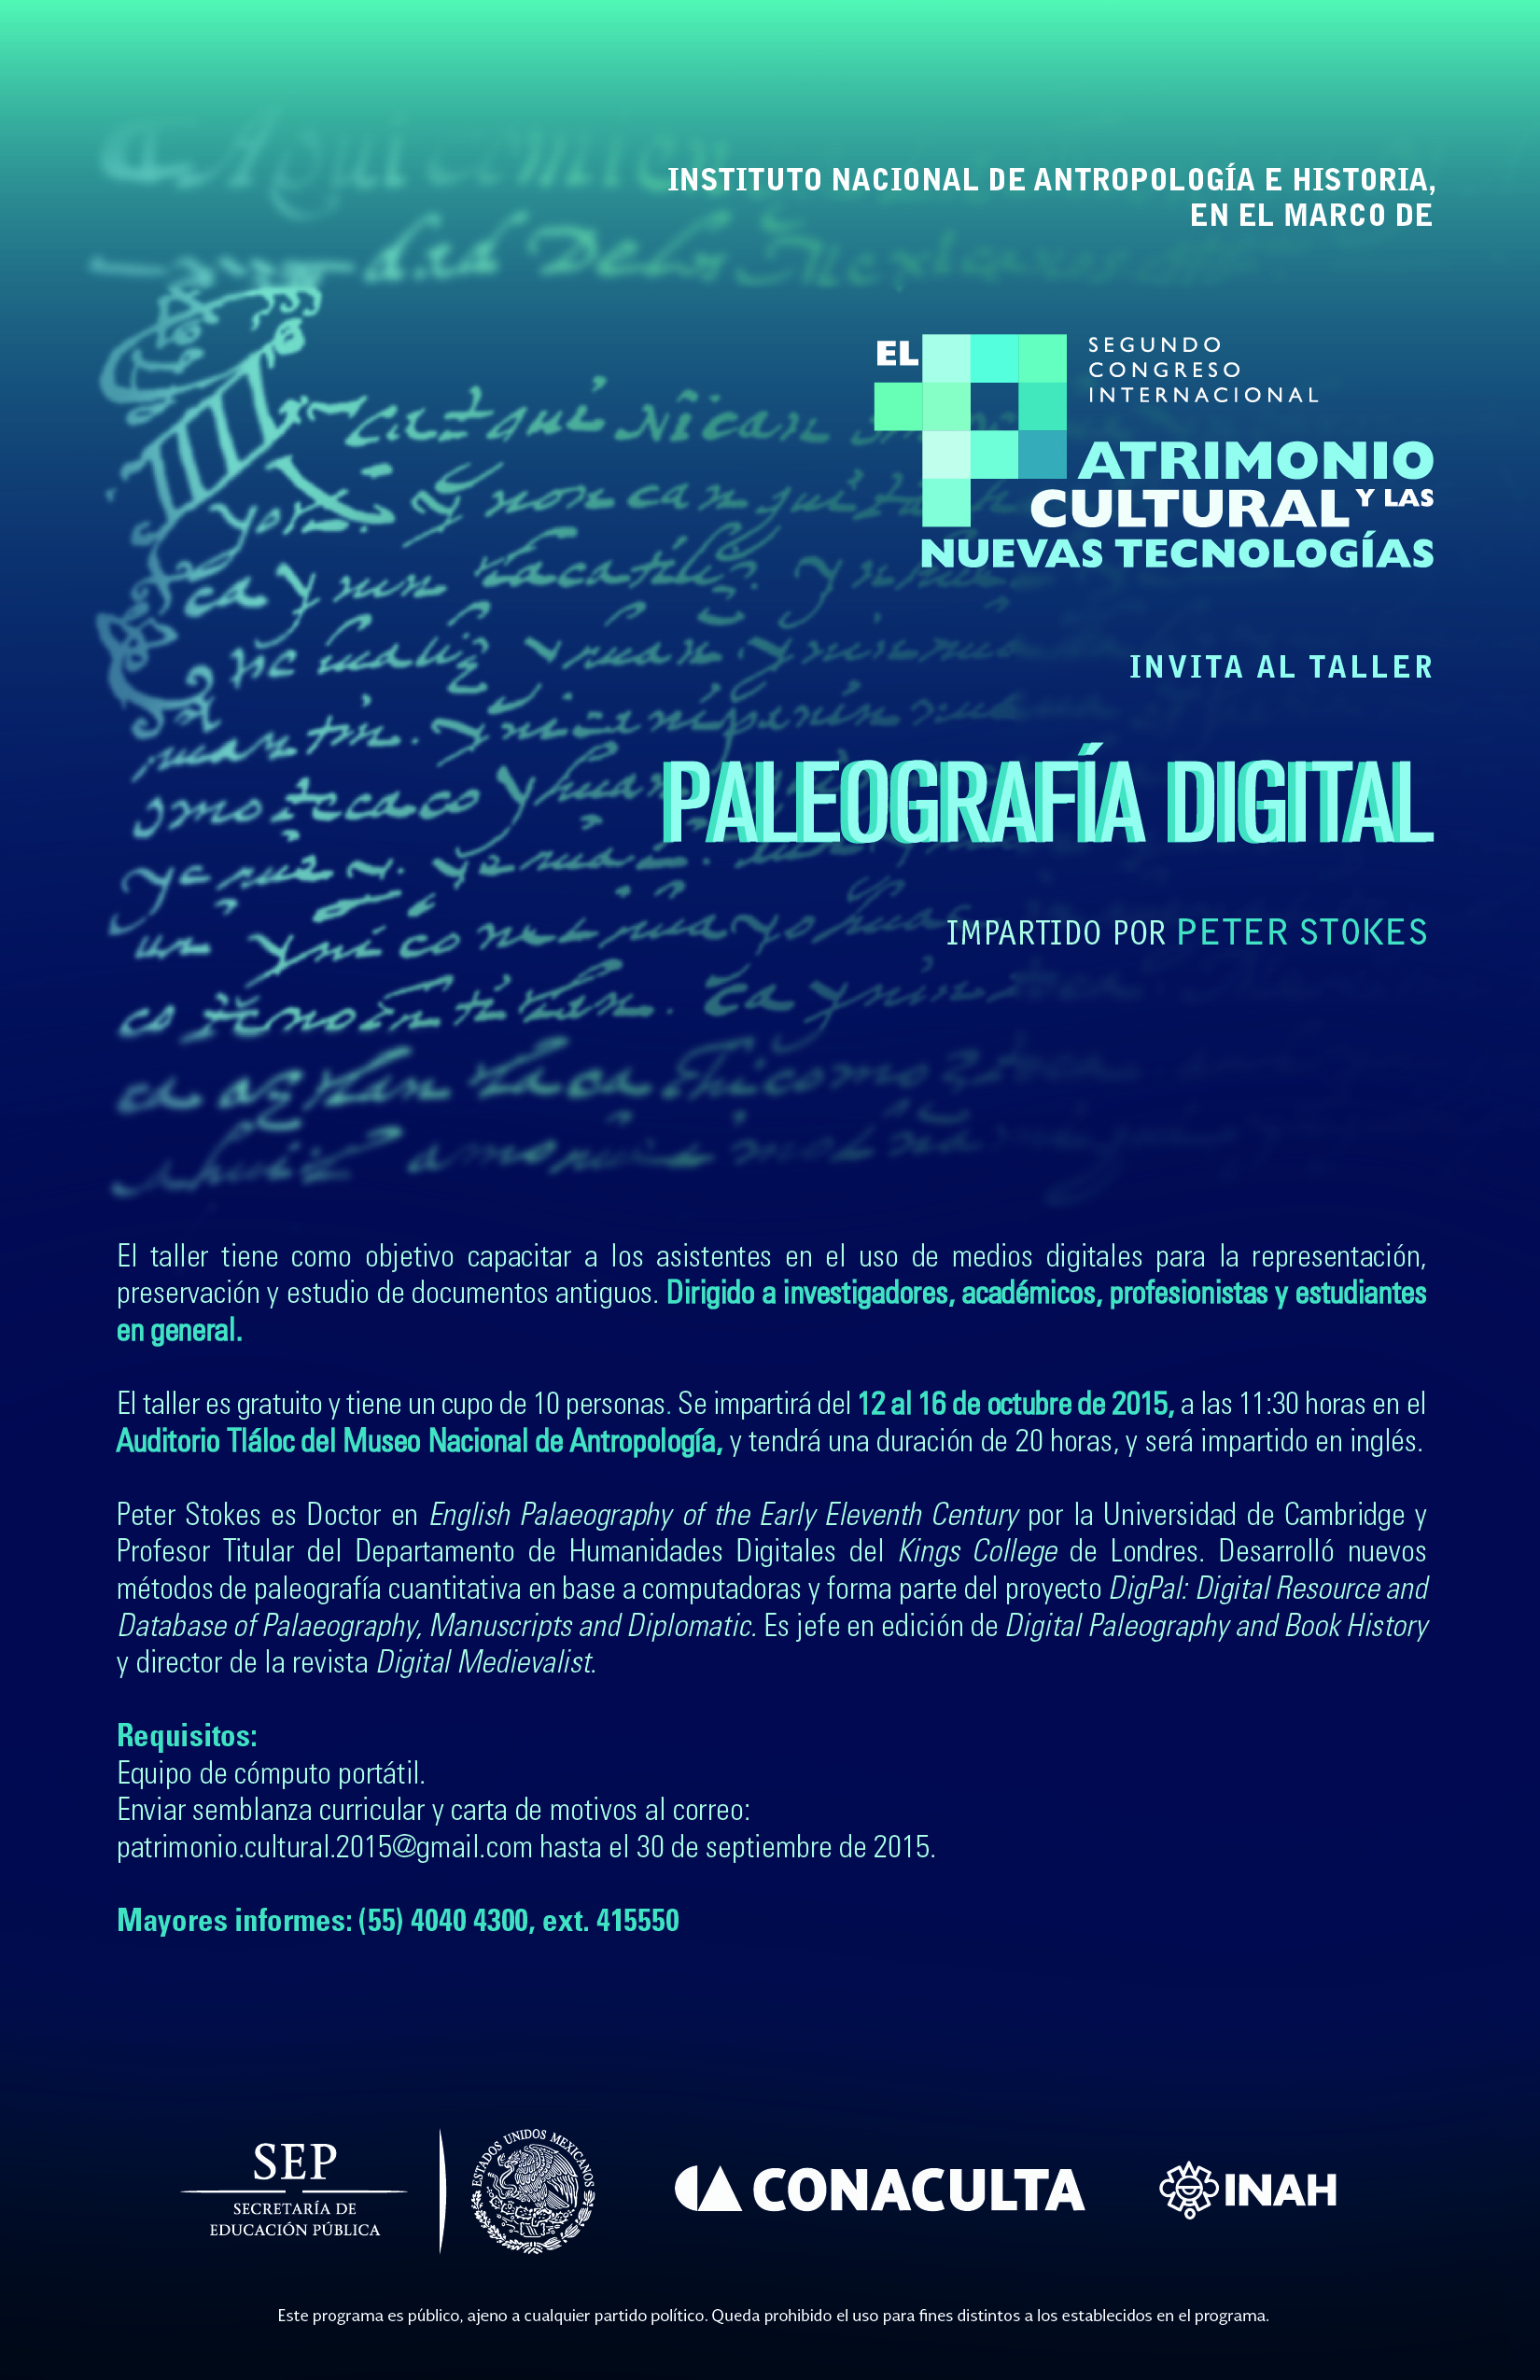 Digital Palaeography\' workshop in Mexico City | DigiPal